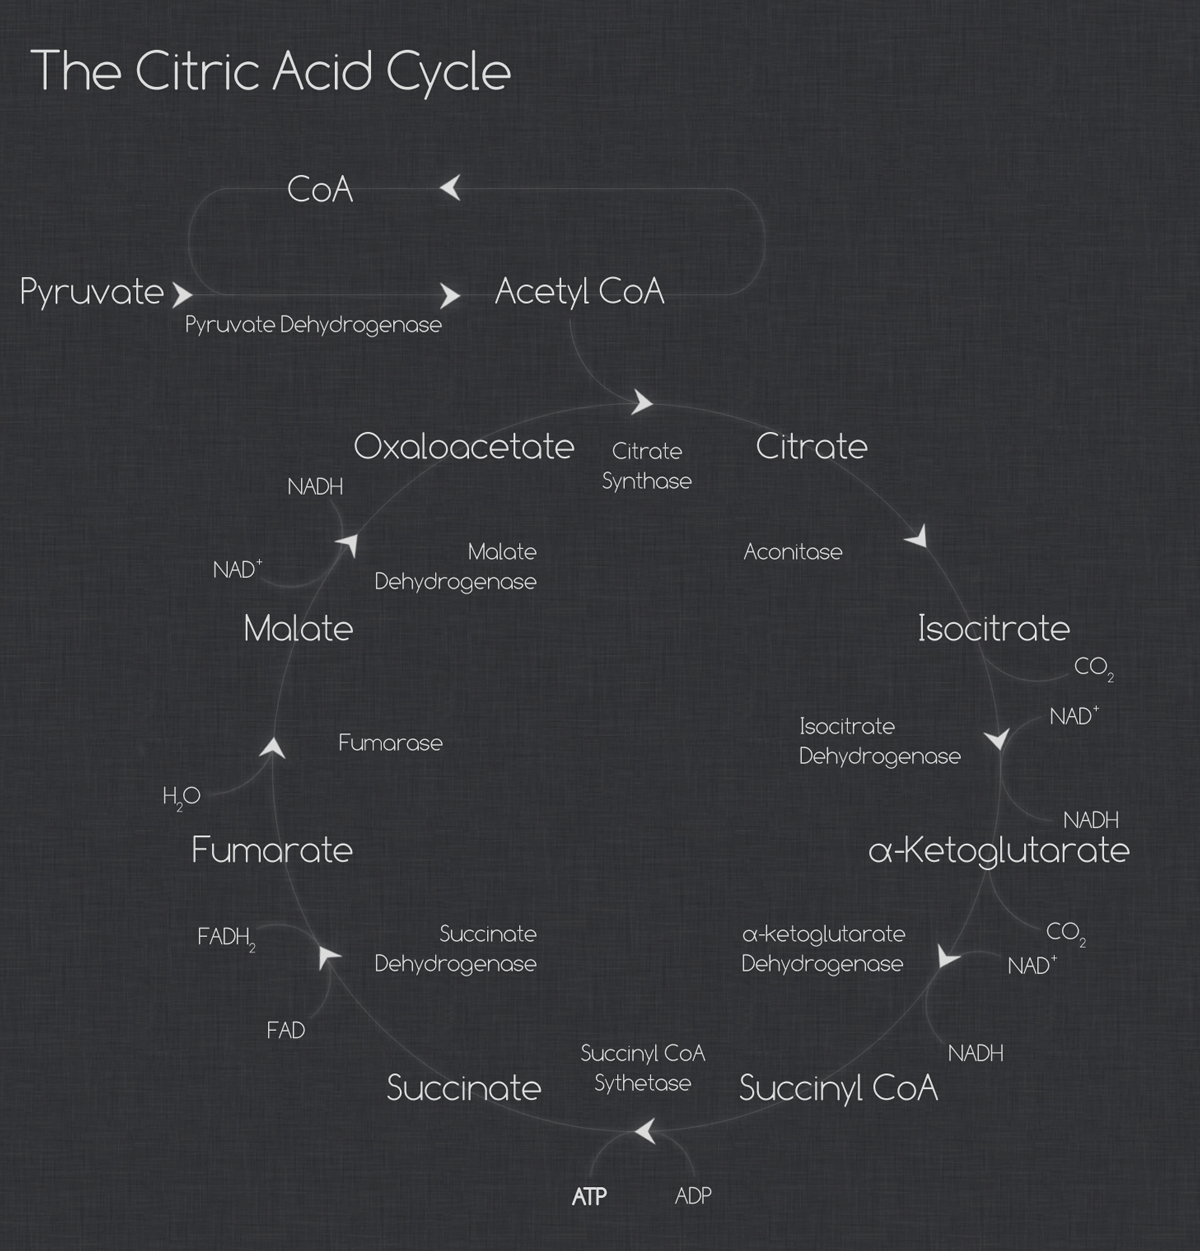 tsa web The Citric Acid Cycle infographics